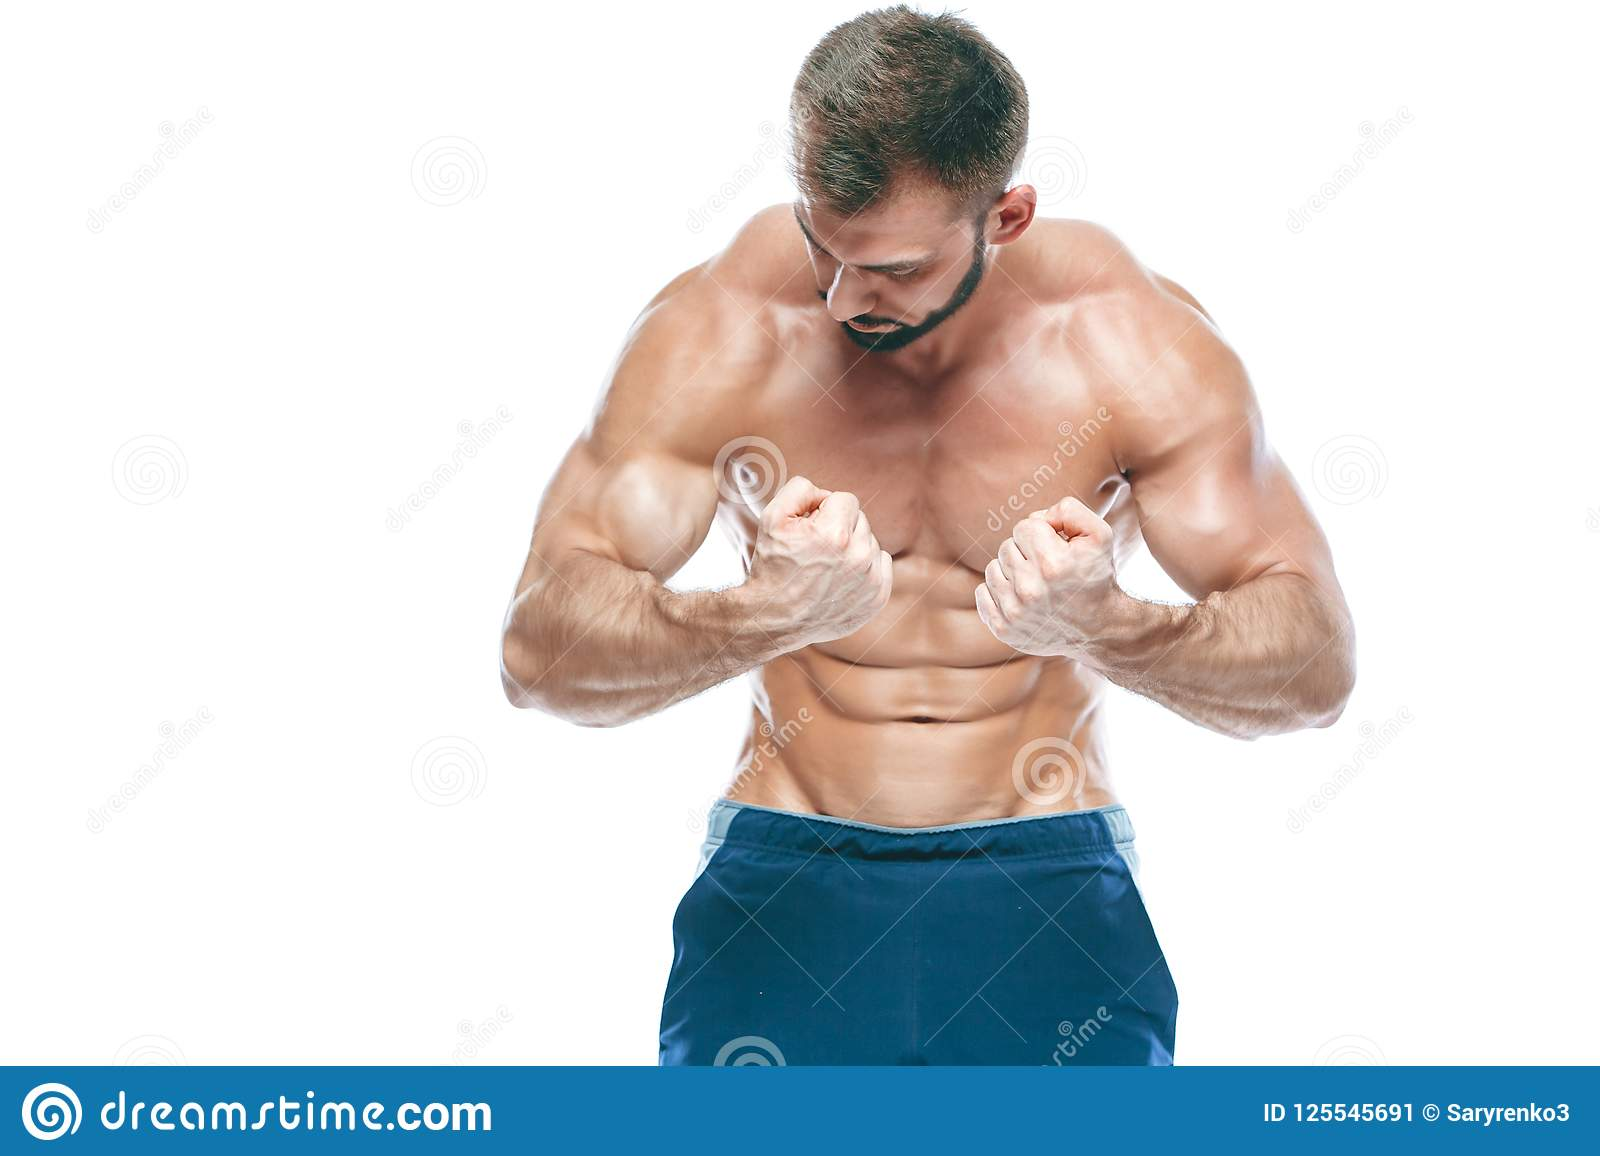 10c4881d712 Beautiful sporty guy male power. Fitness muscled in blue shorts. on  isolated white background. Man with muscular torso. Strong Athletic Man  Fitness Model ...